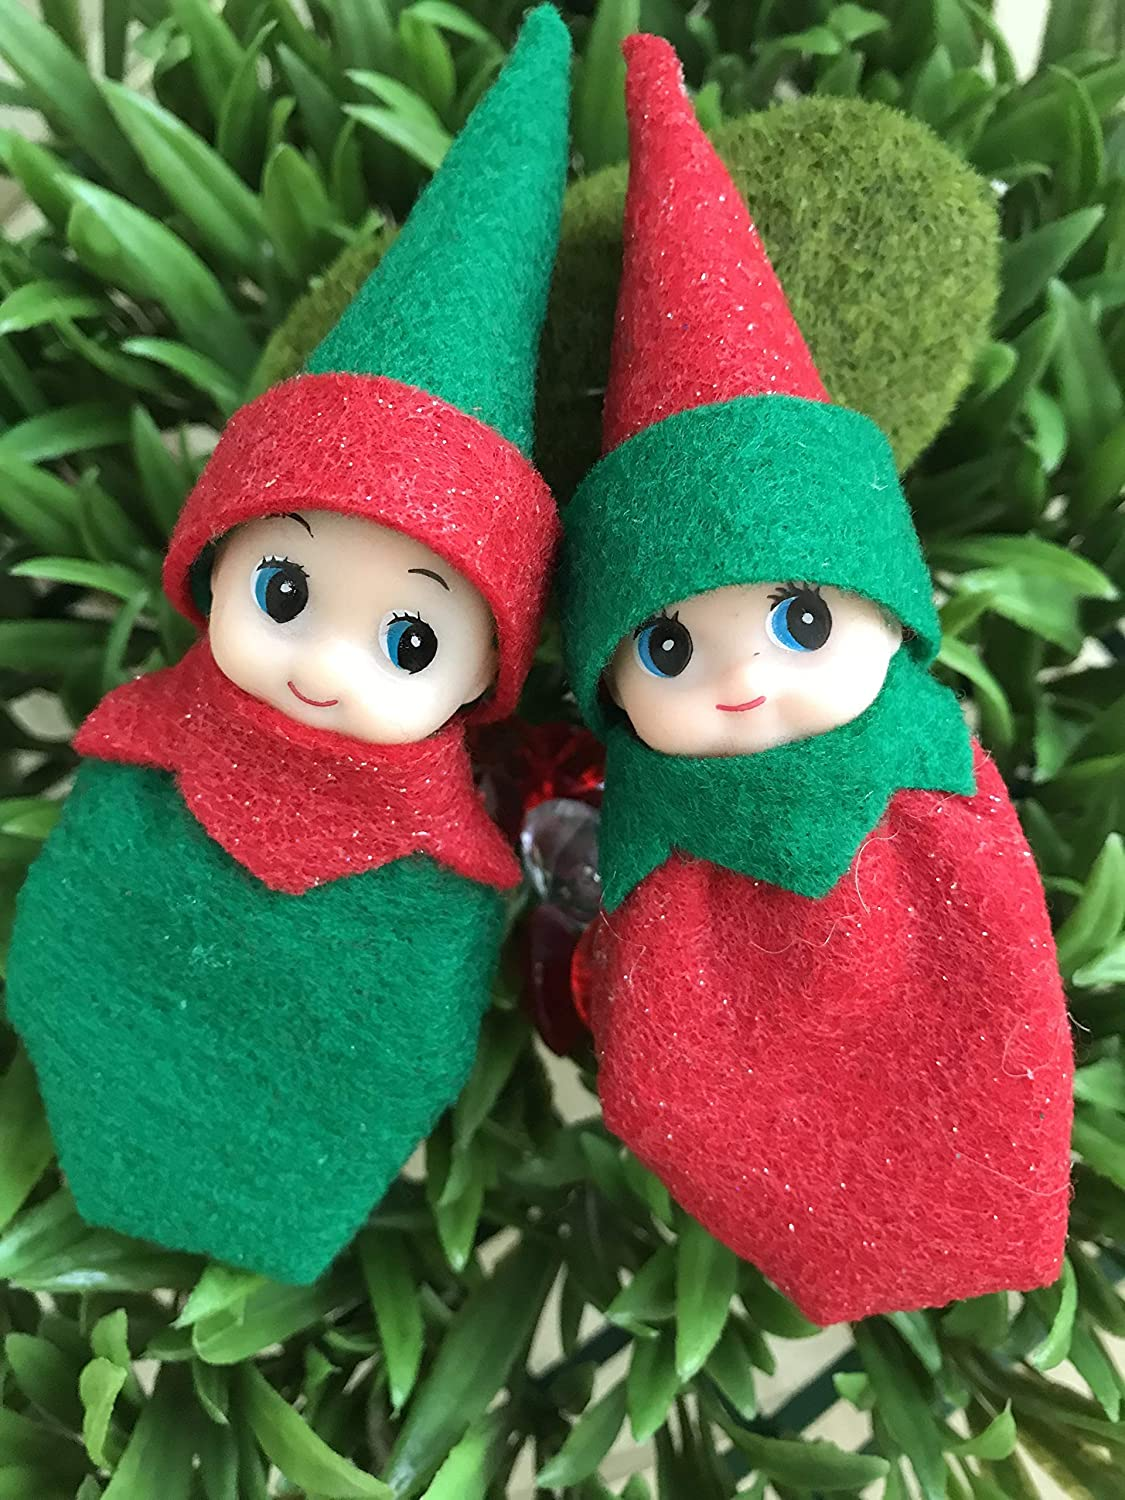 Baby Elf on the look for a family, Baby Elf doll twins Jingle and Belle